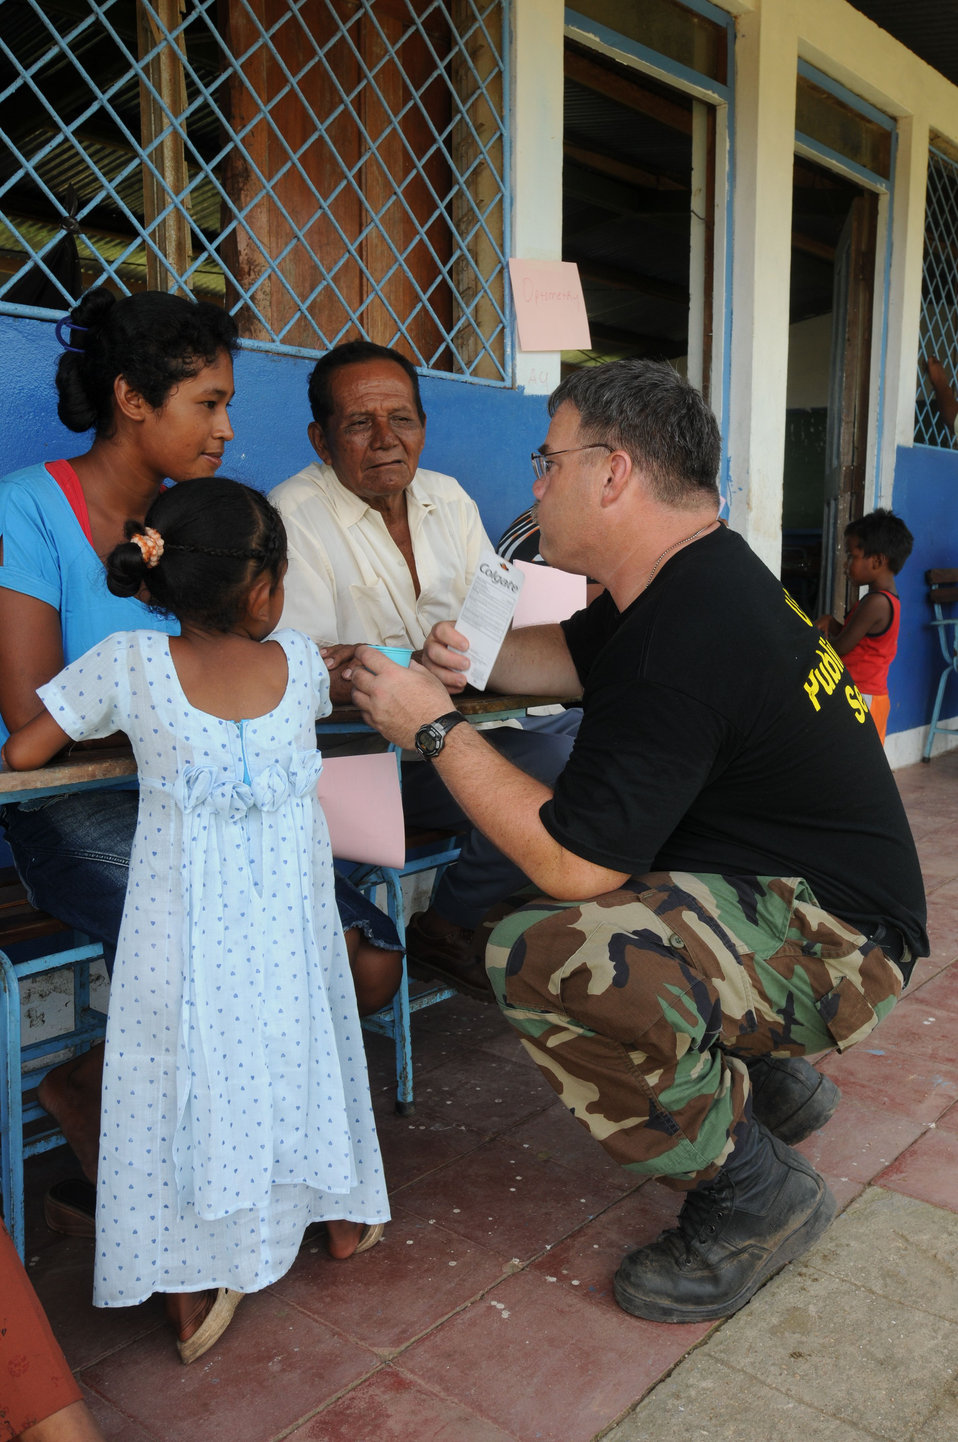 This 2008 photograph depicts U.S. Public Health Service (USPHS), Cmdr. Dale Bates, talking to a female patient in Puerto Cabezas, Nicaragua,